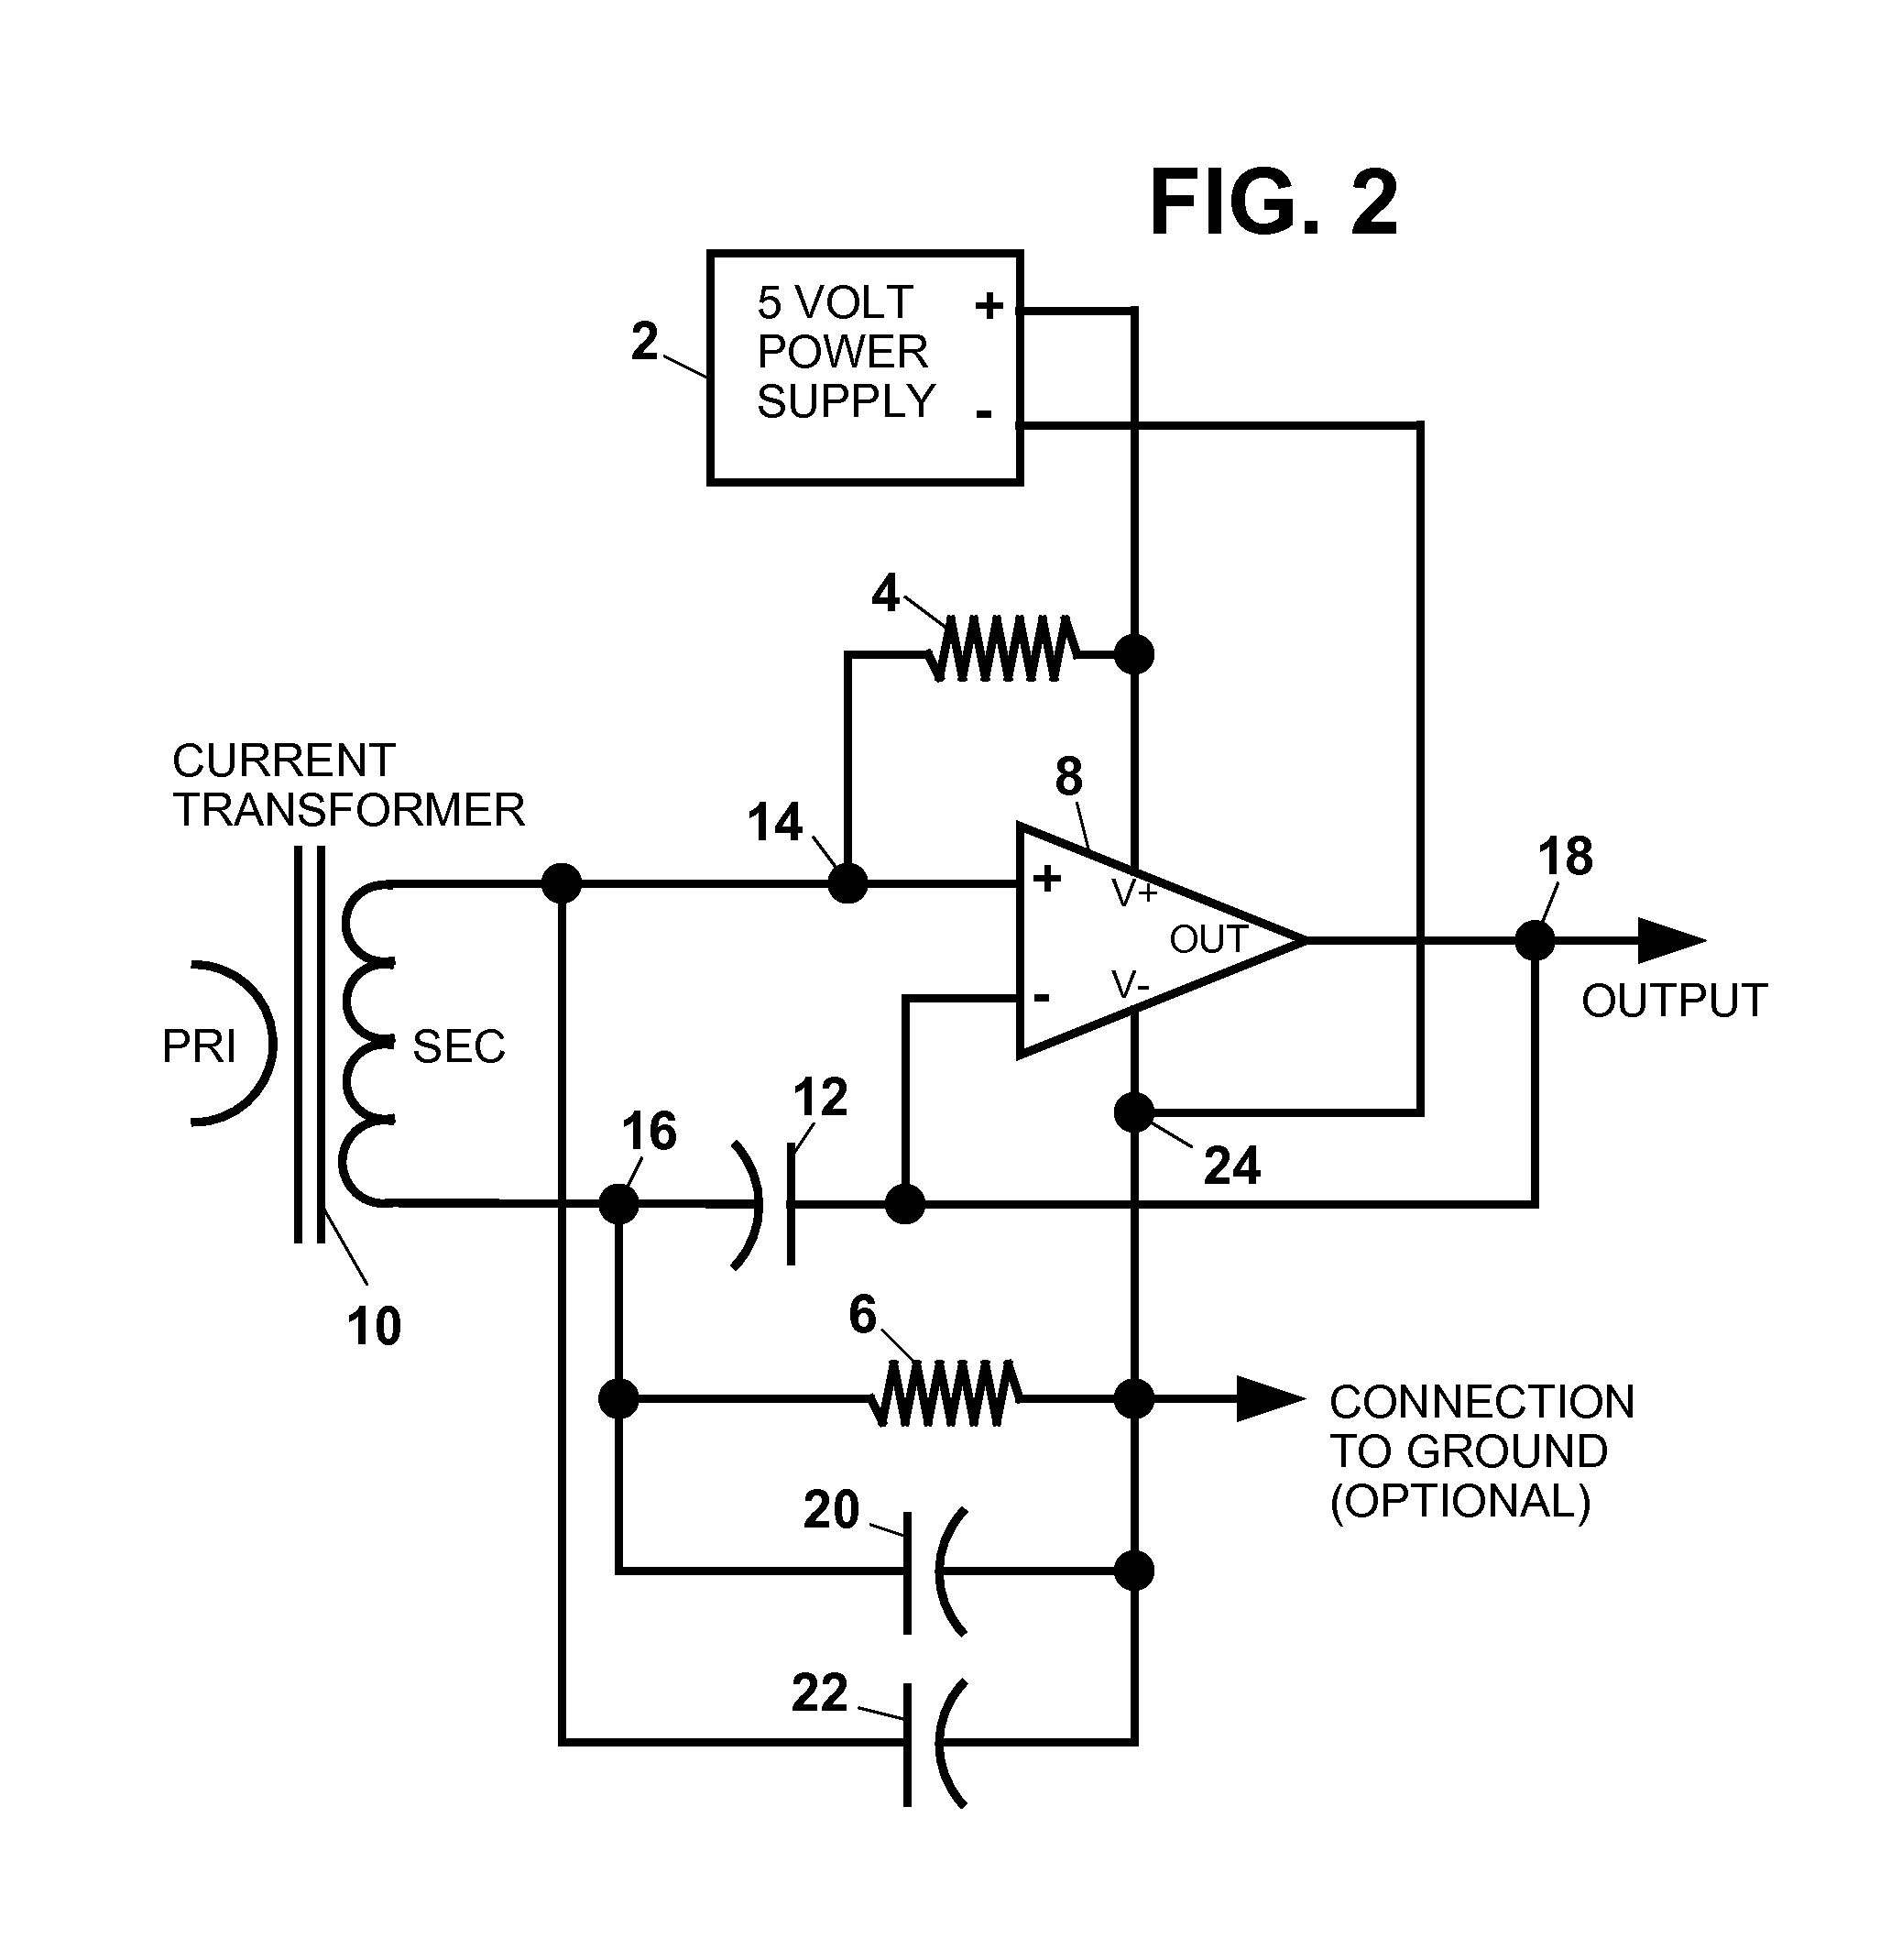 Wiring Diagram Current Transformer : Patent us amplifier circuit for a current